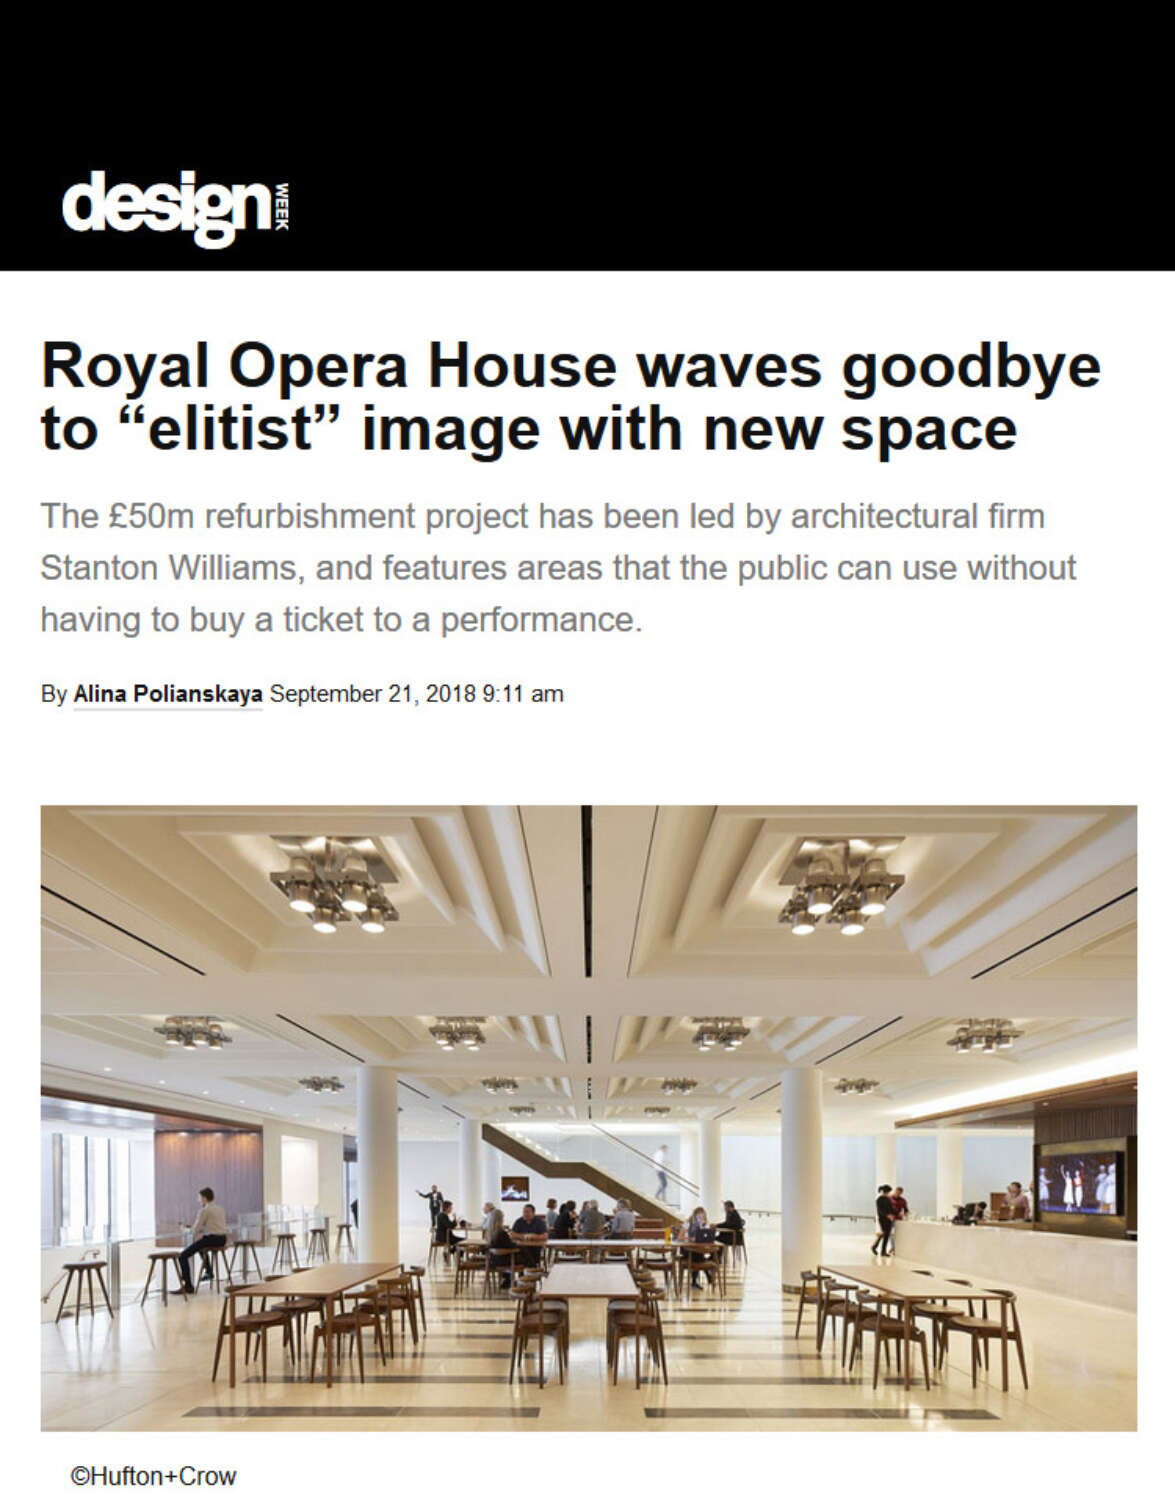 Design Week features The Royal Opera House